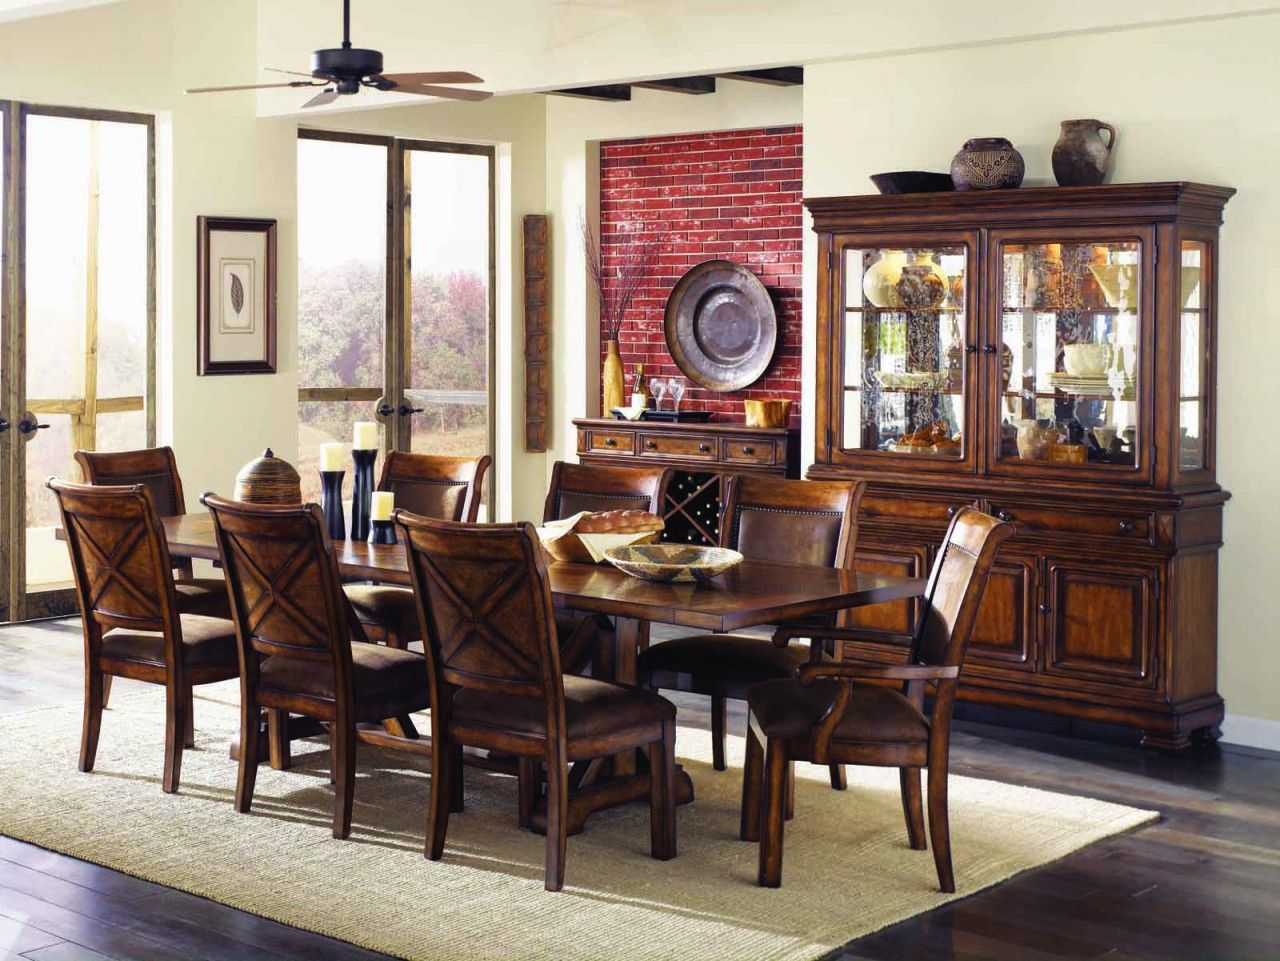 Legacy Classic Larkspur Trestle Table Dining Set Dining Room Sets Charming Dining Room Dining Room Design Dining rooms legacy classic